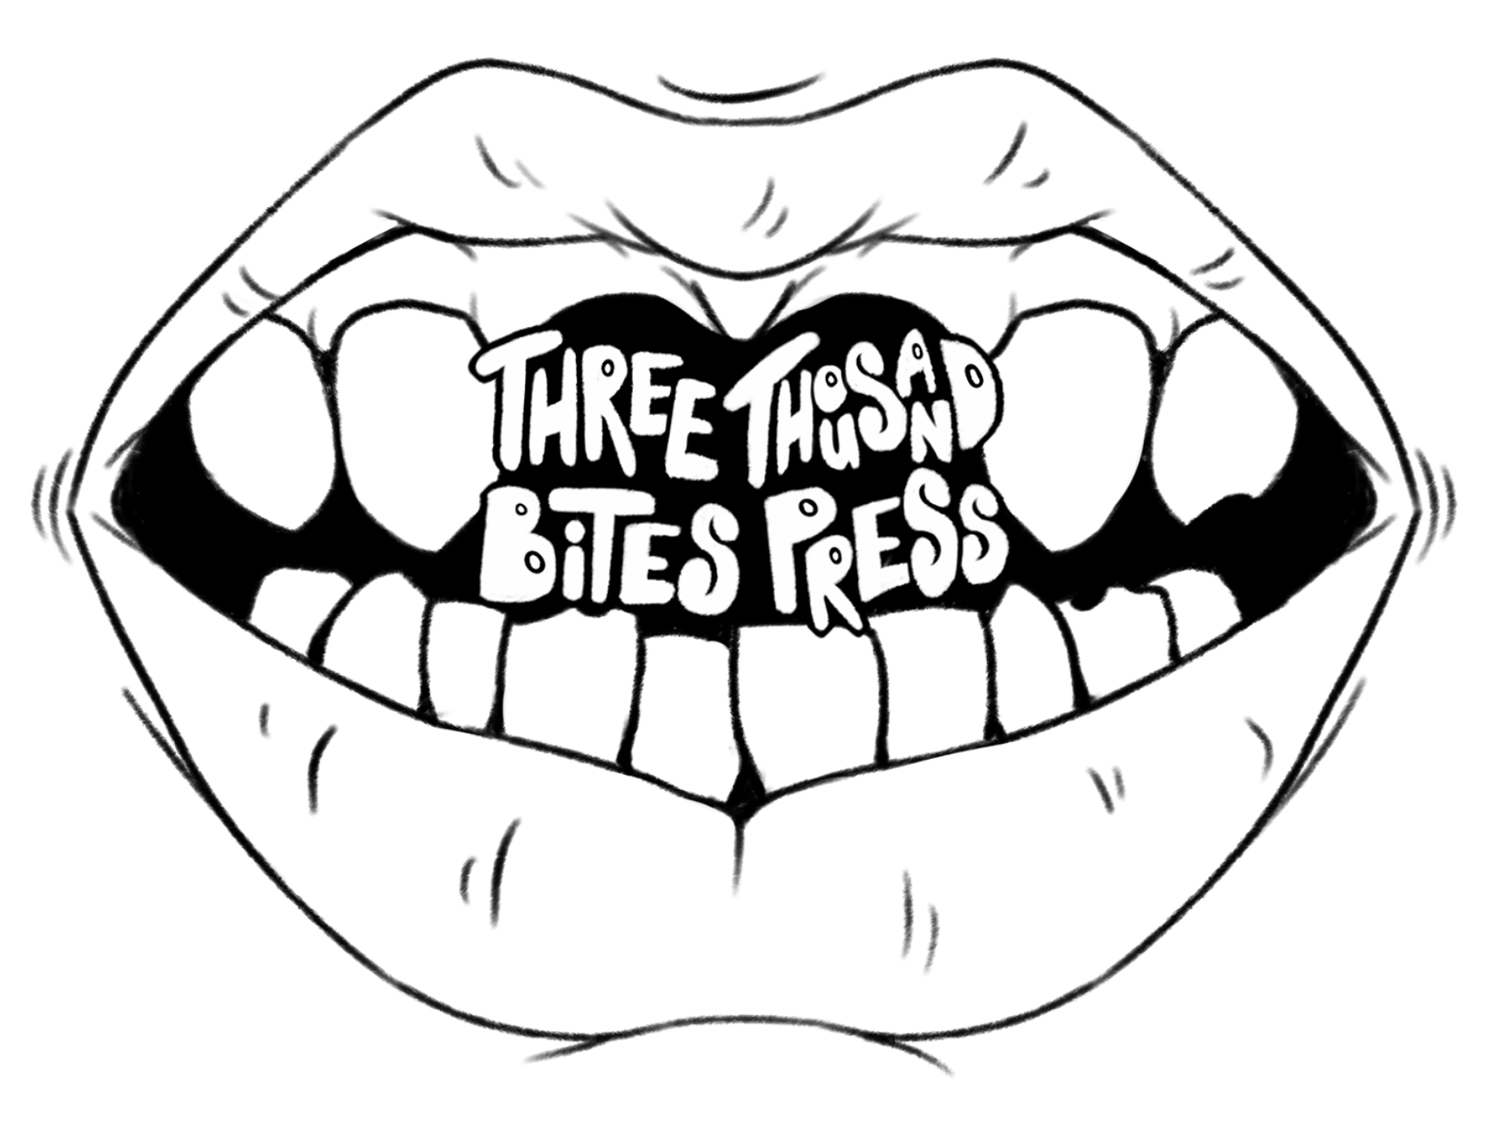 Three Thousand Bites Press